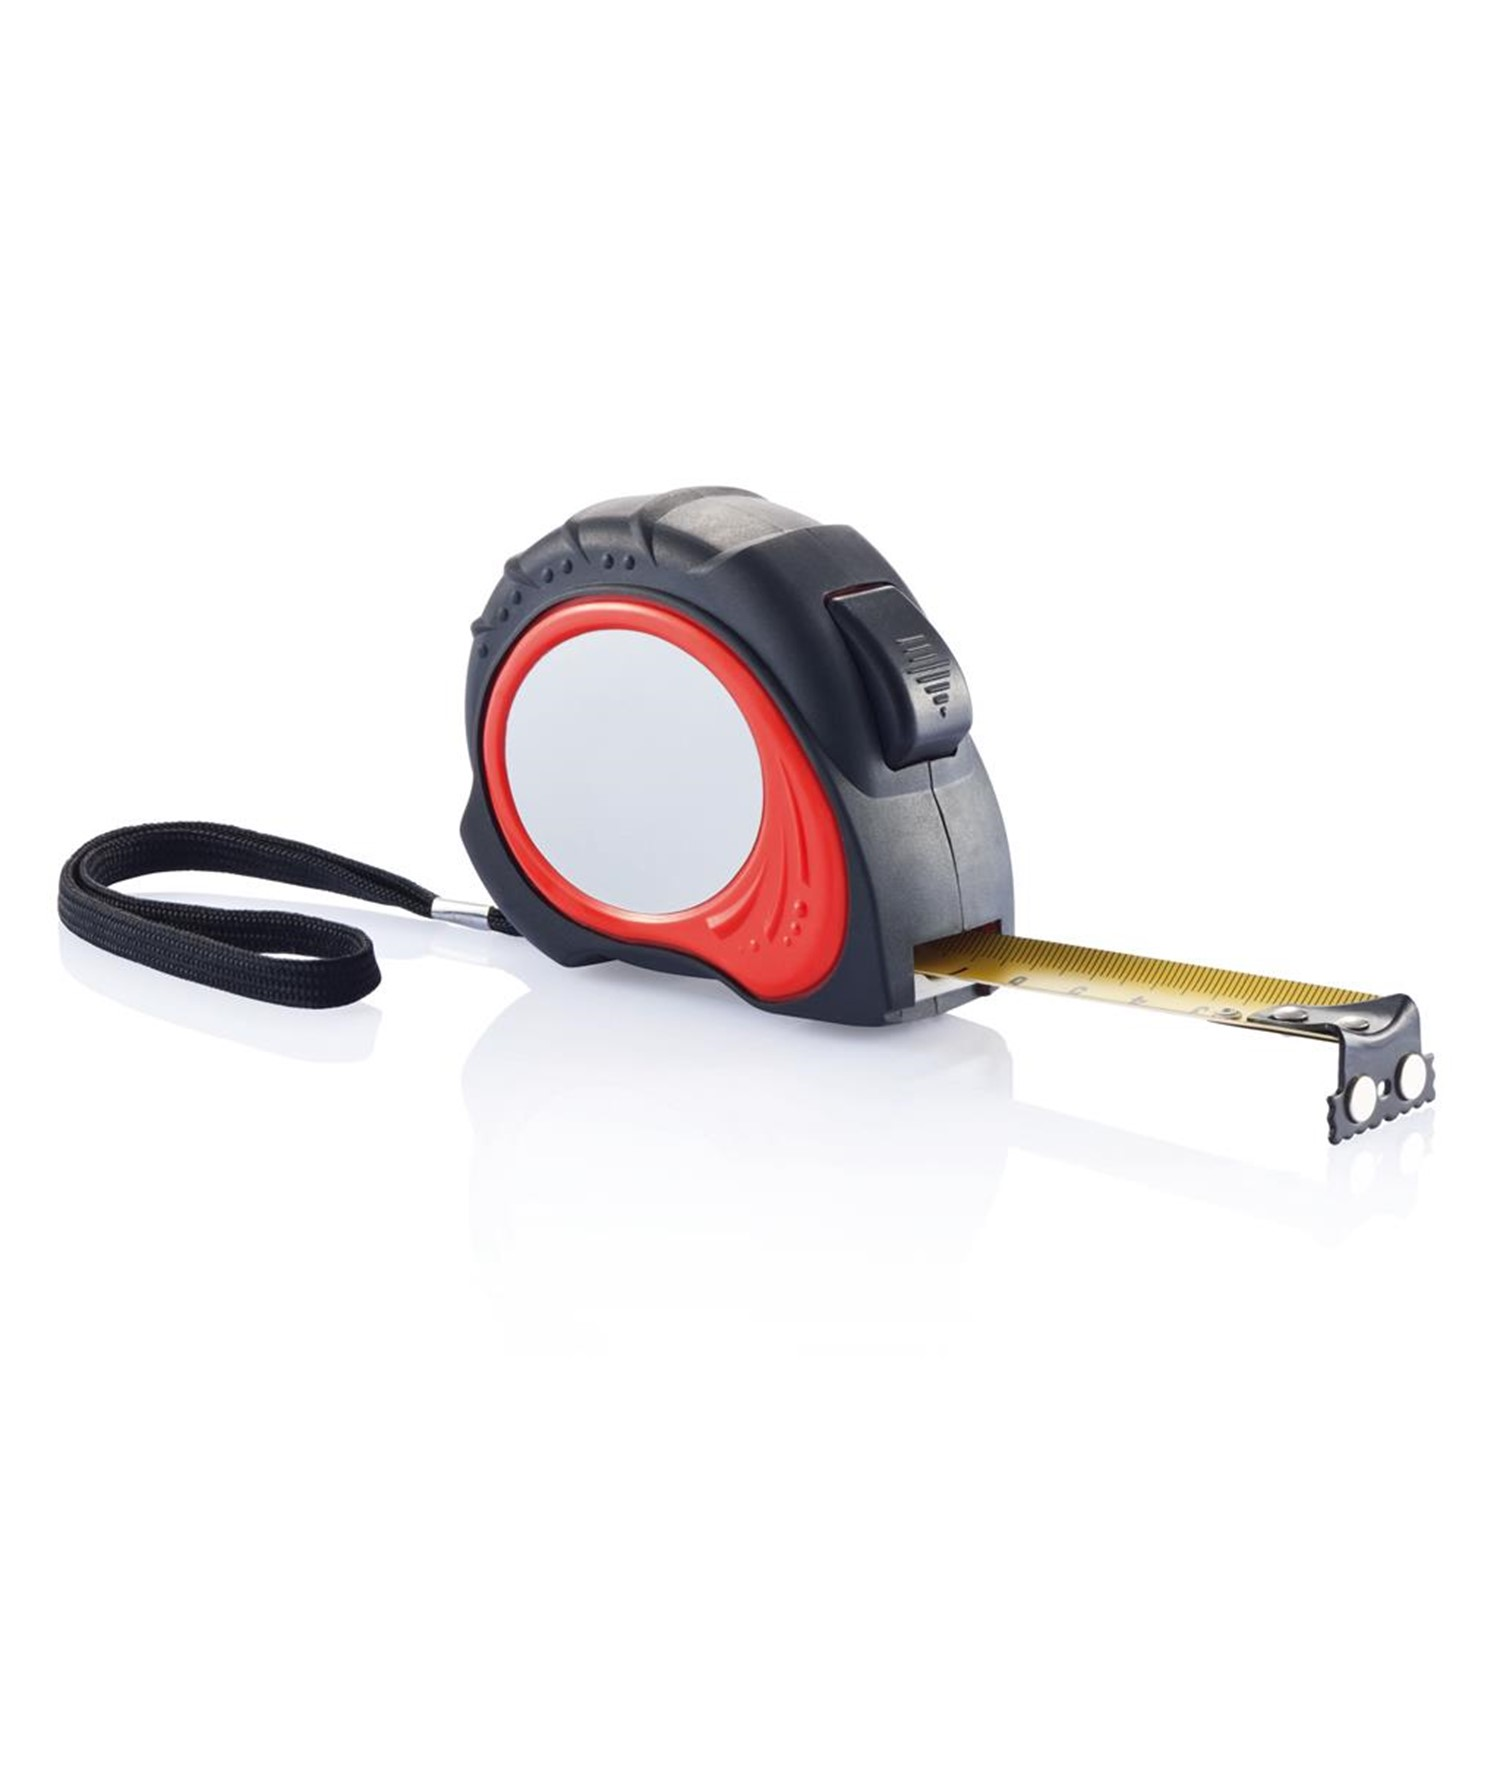 8M/25MM TOOL PRO MEASURING TAPE